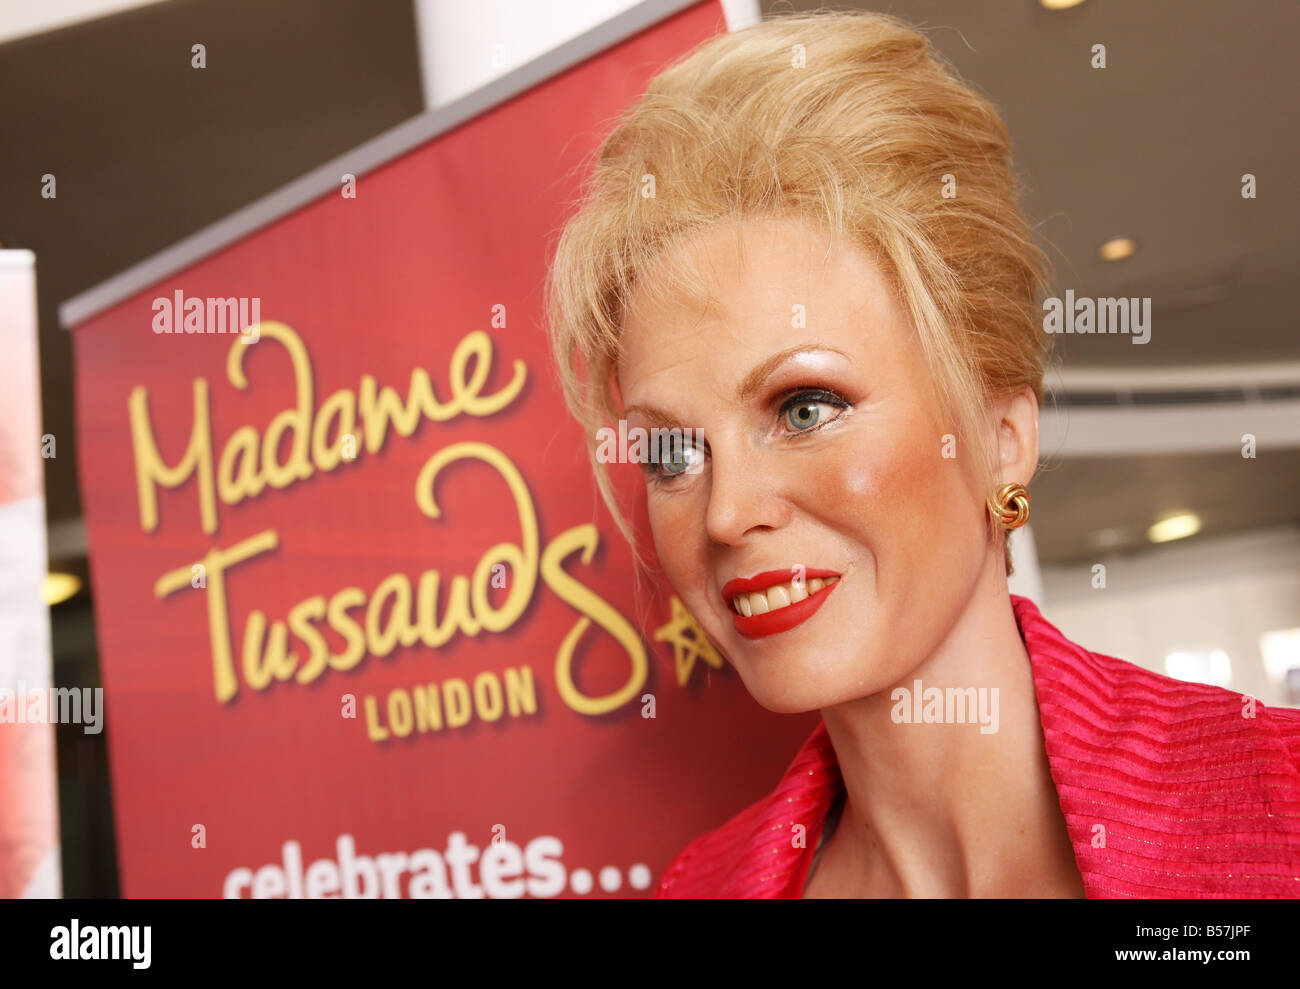 Waxwork of Joanna Lumley in front of a Madame Tussaud's poster - Stock Image